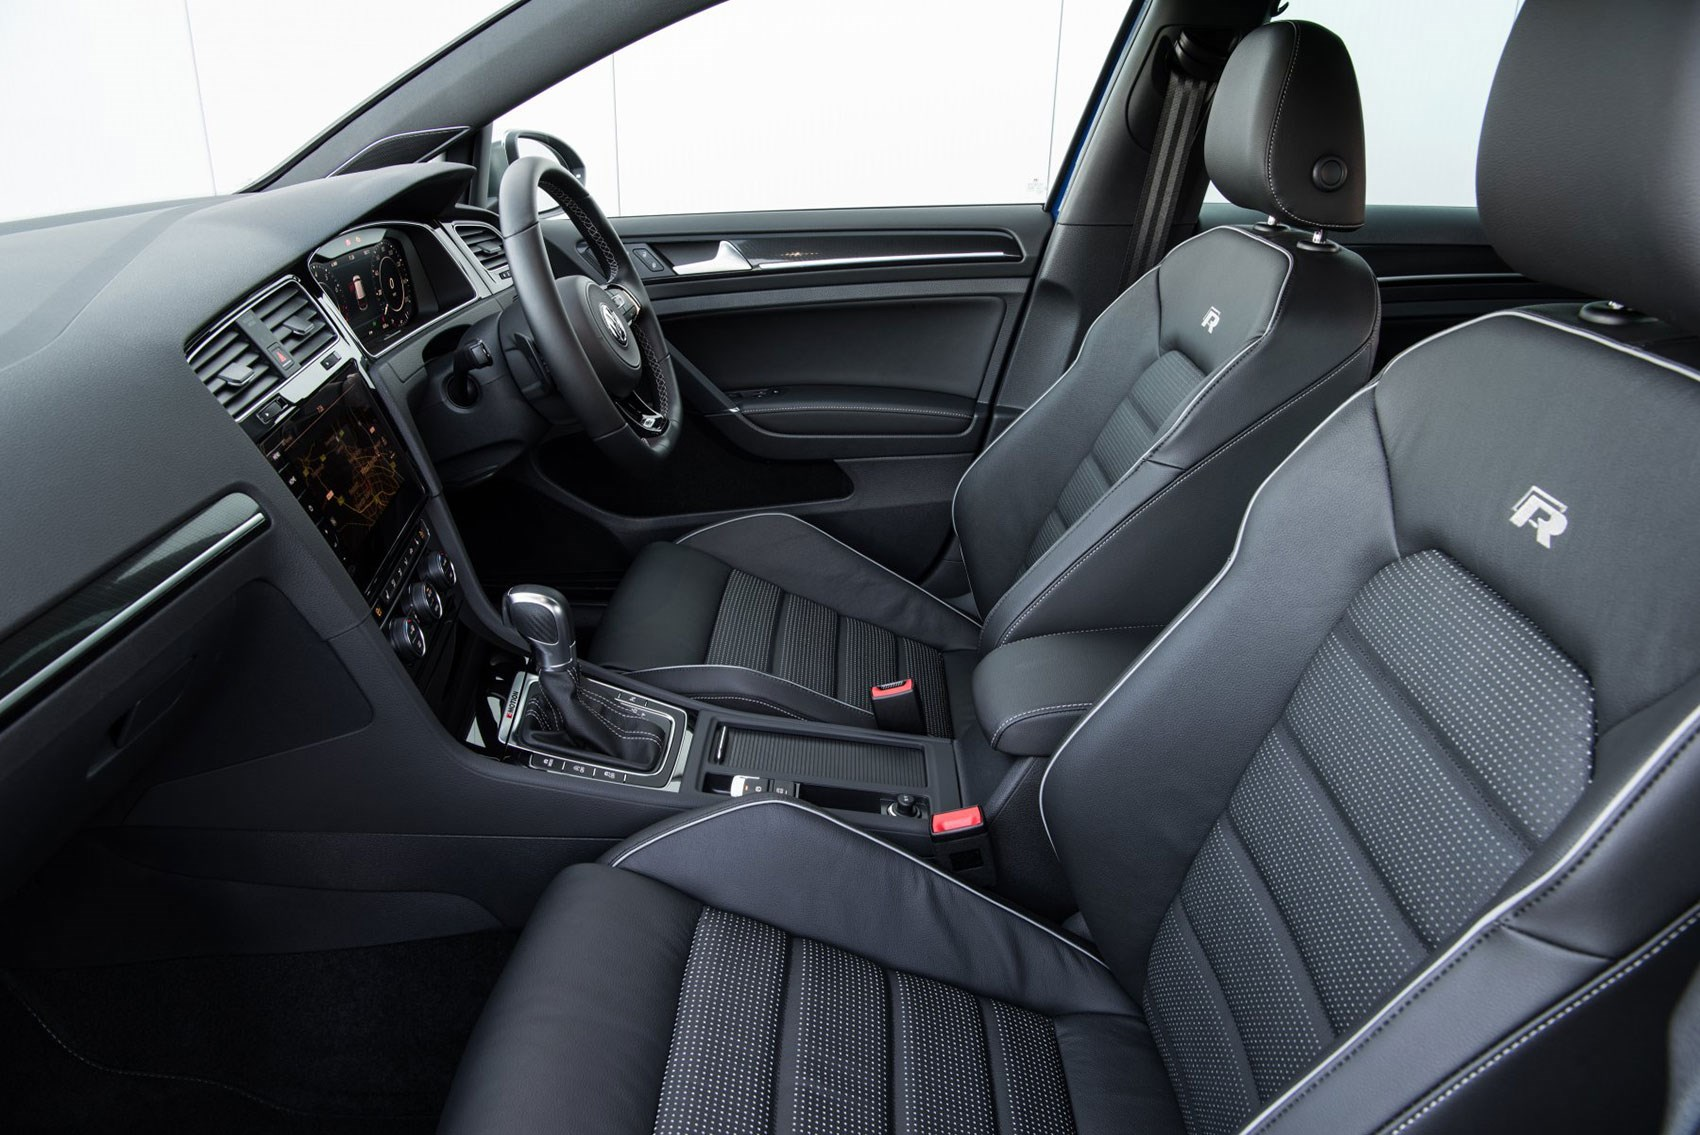 VW Golf R interior: pure class